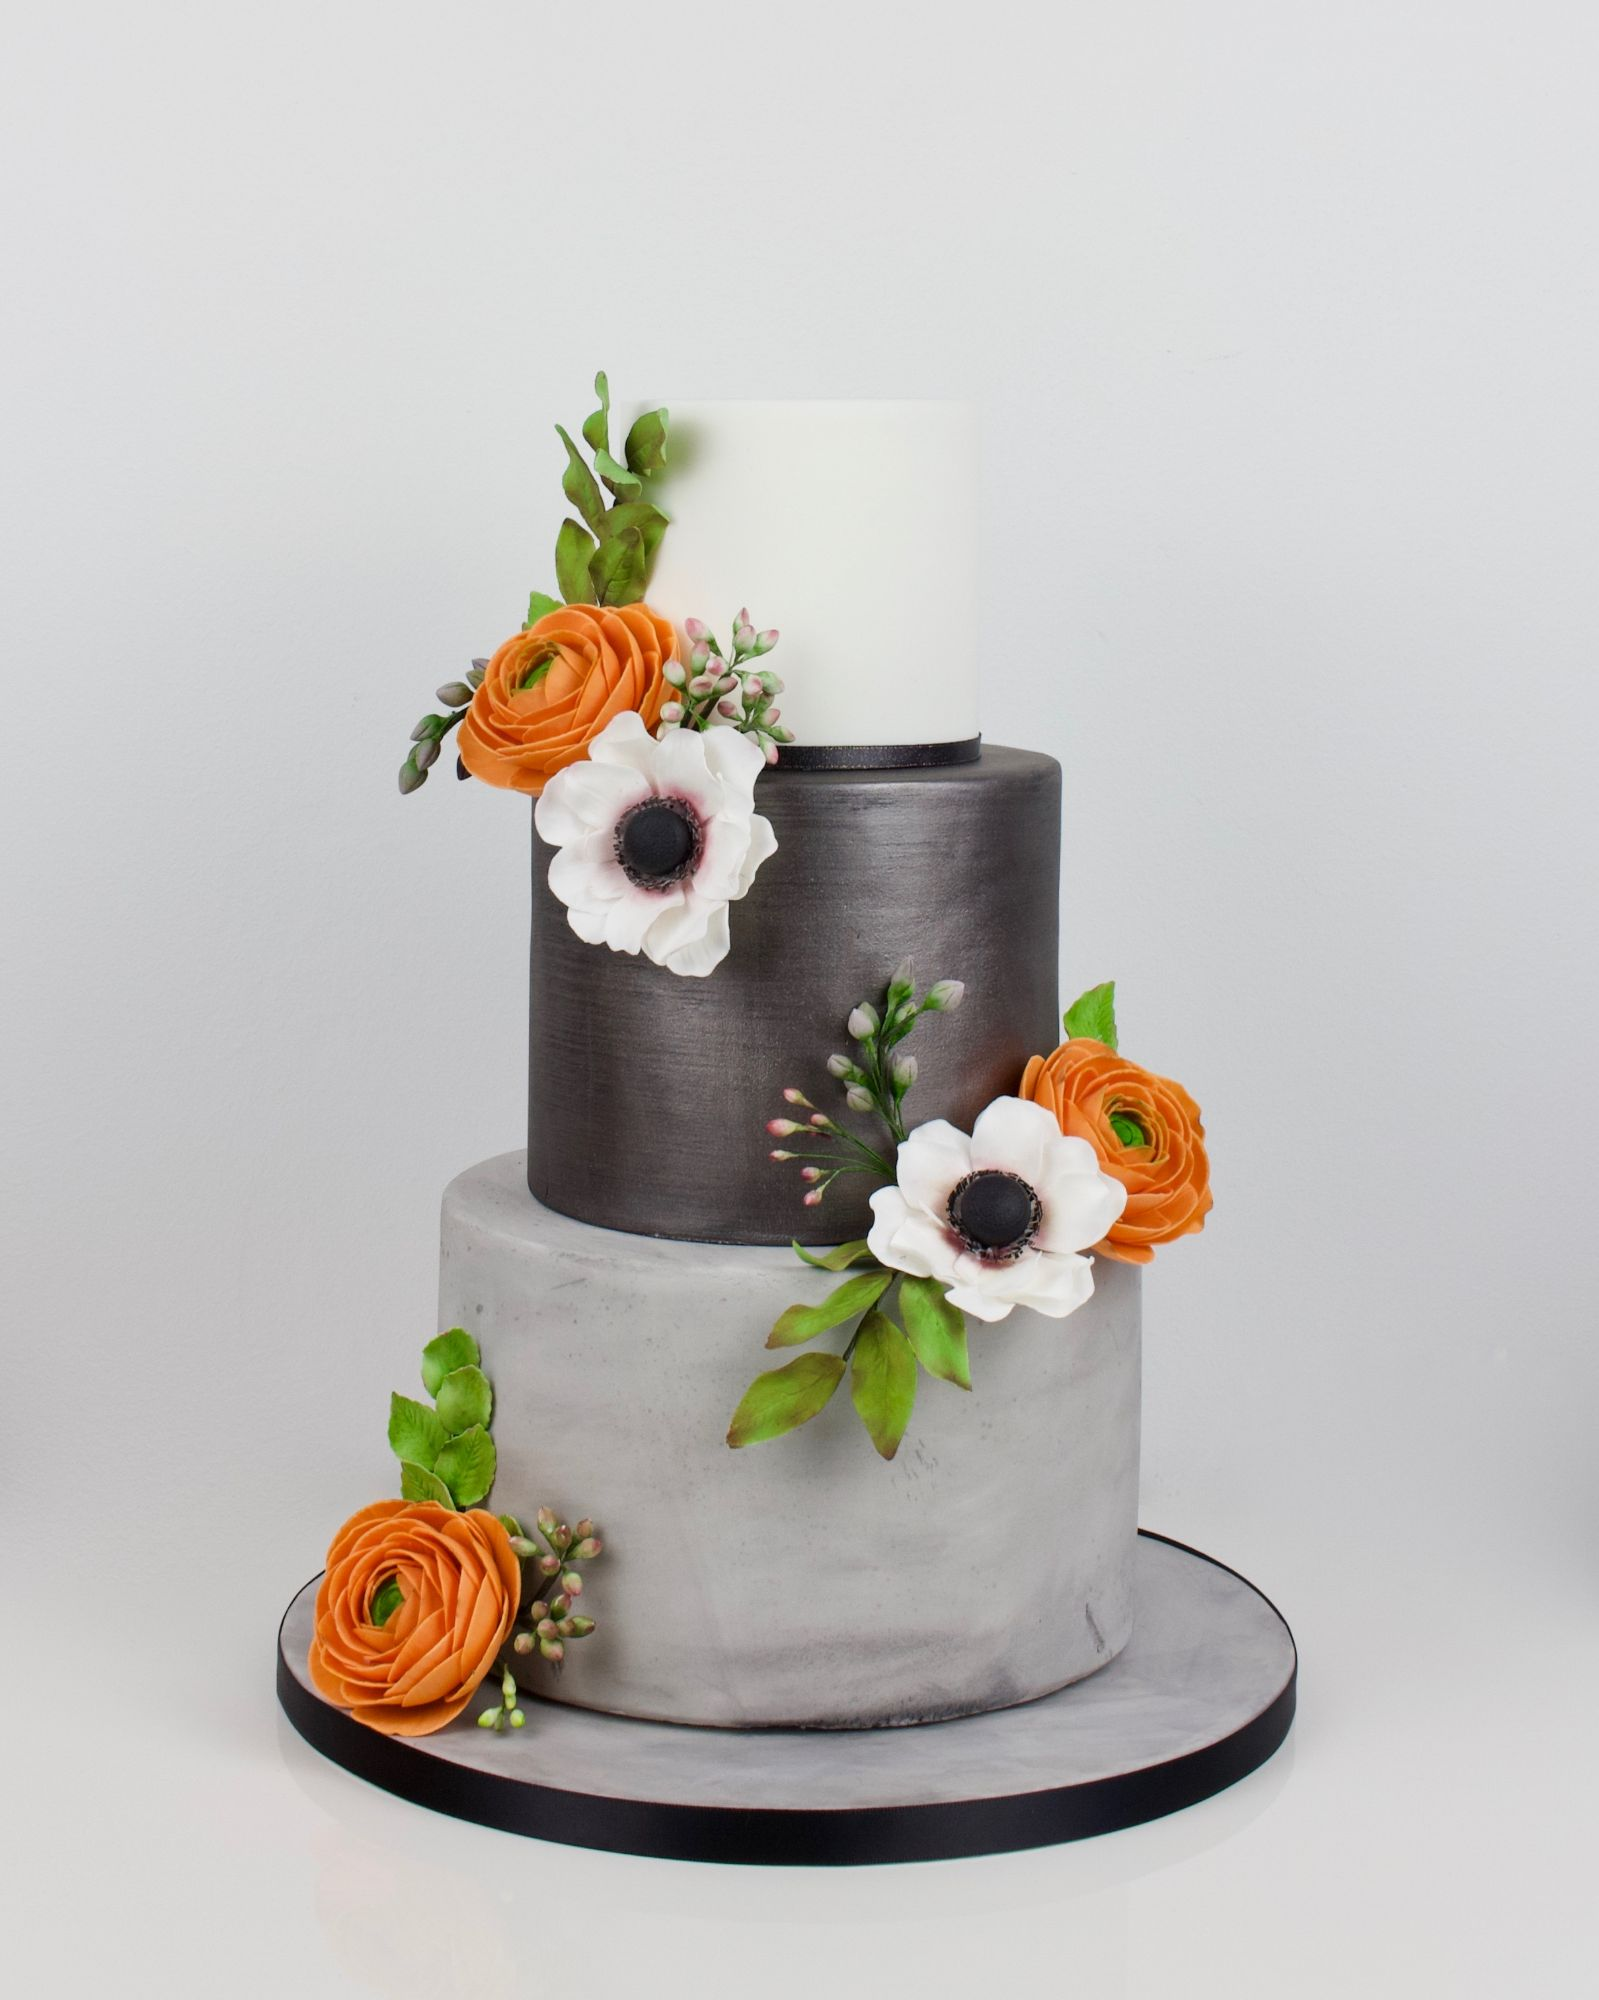 Concrete effect, lustre and orange ranunculus